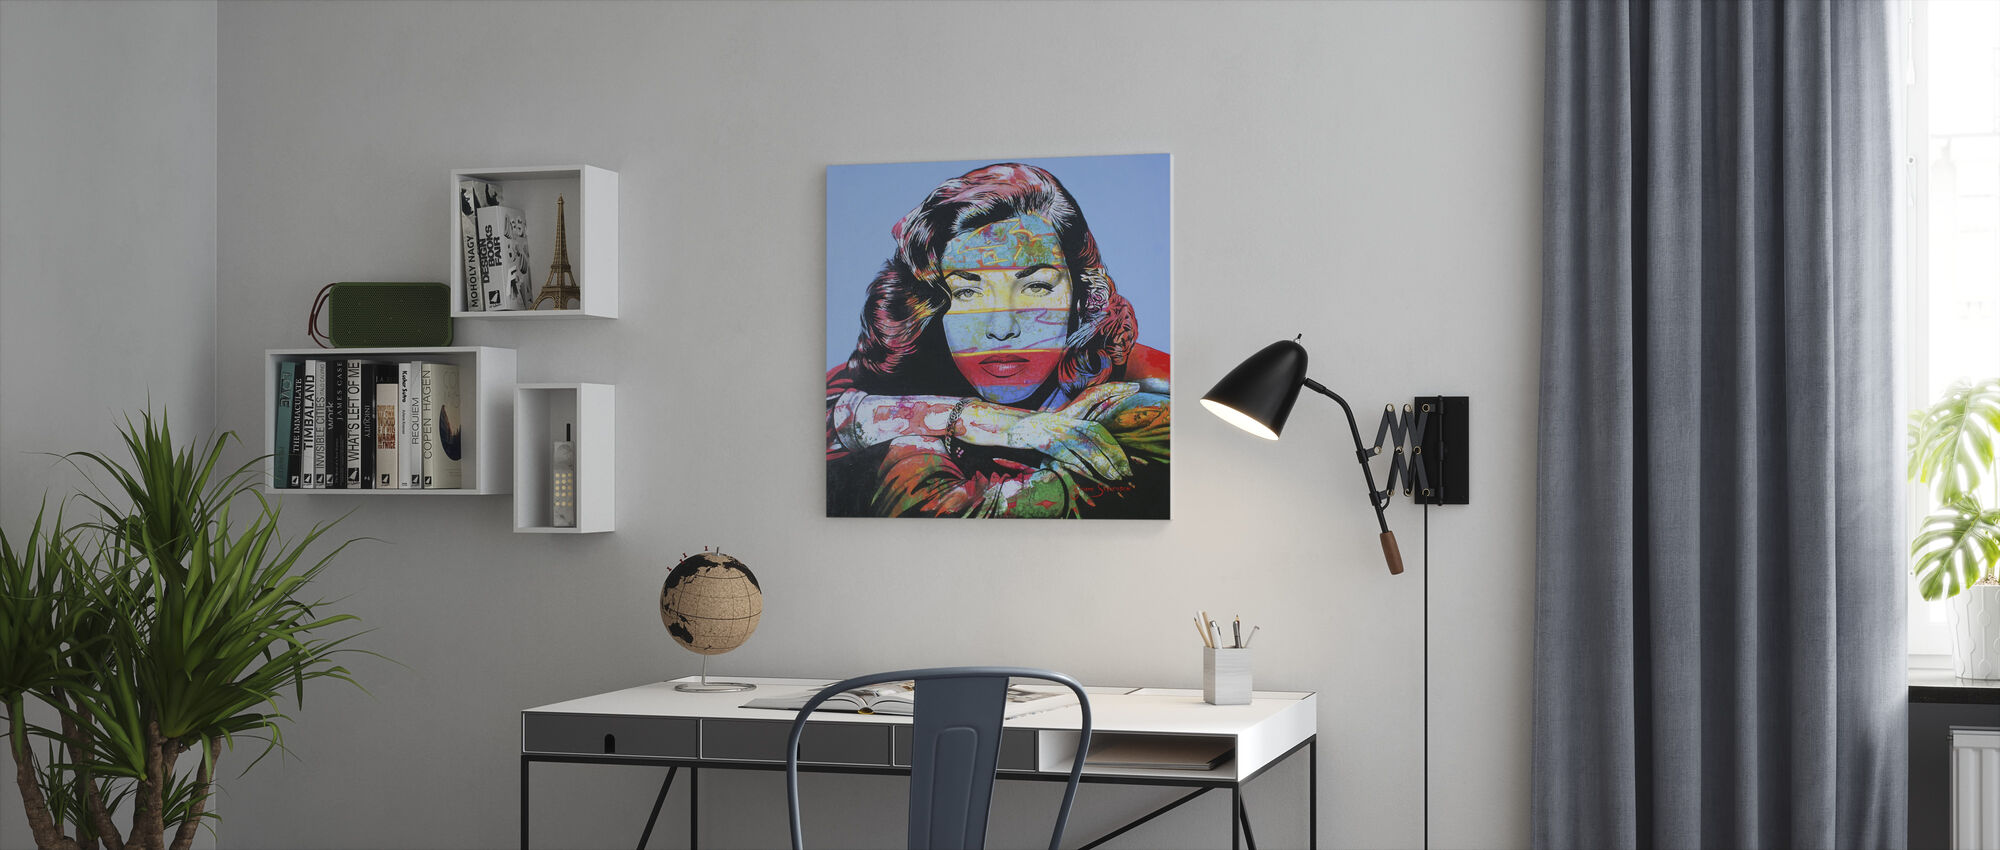 Just Like Bacall - Canvas print - Office